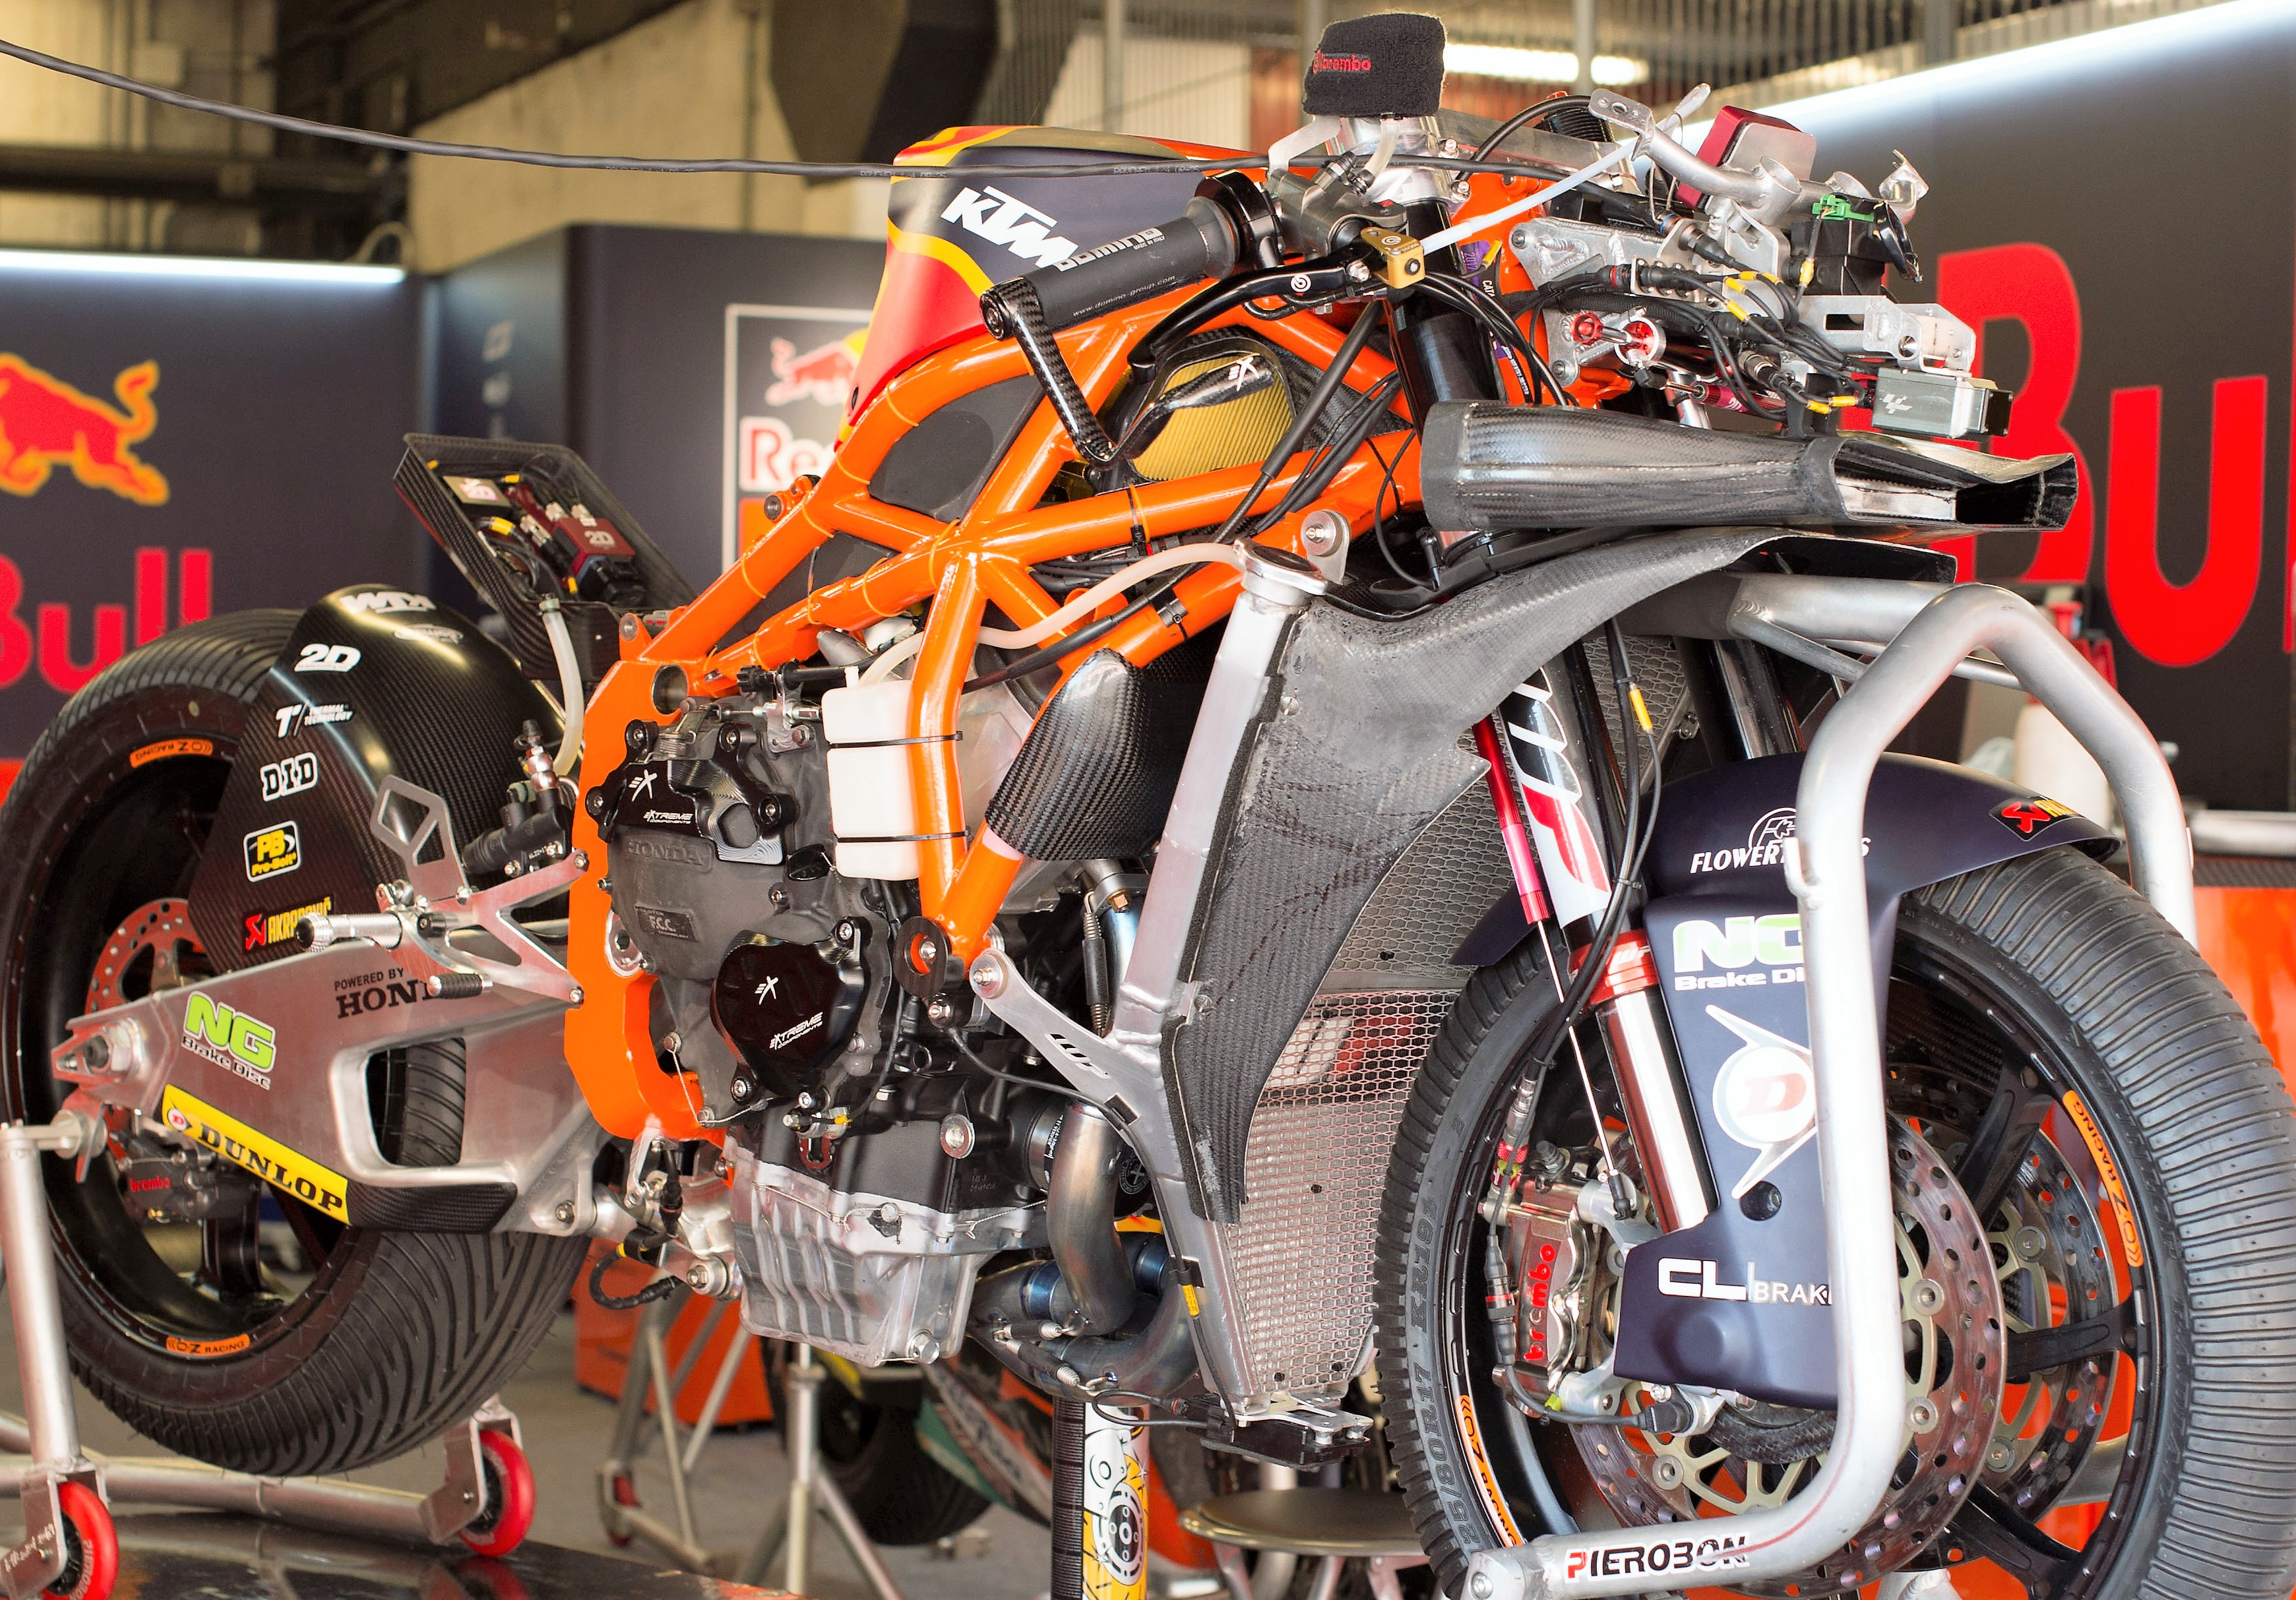 Motogp  Ktm Chassis For Sam Lowes In Moto2